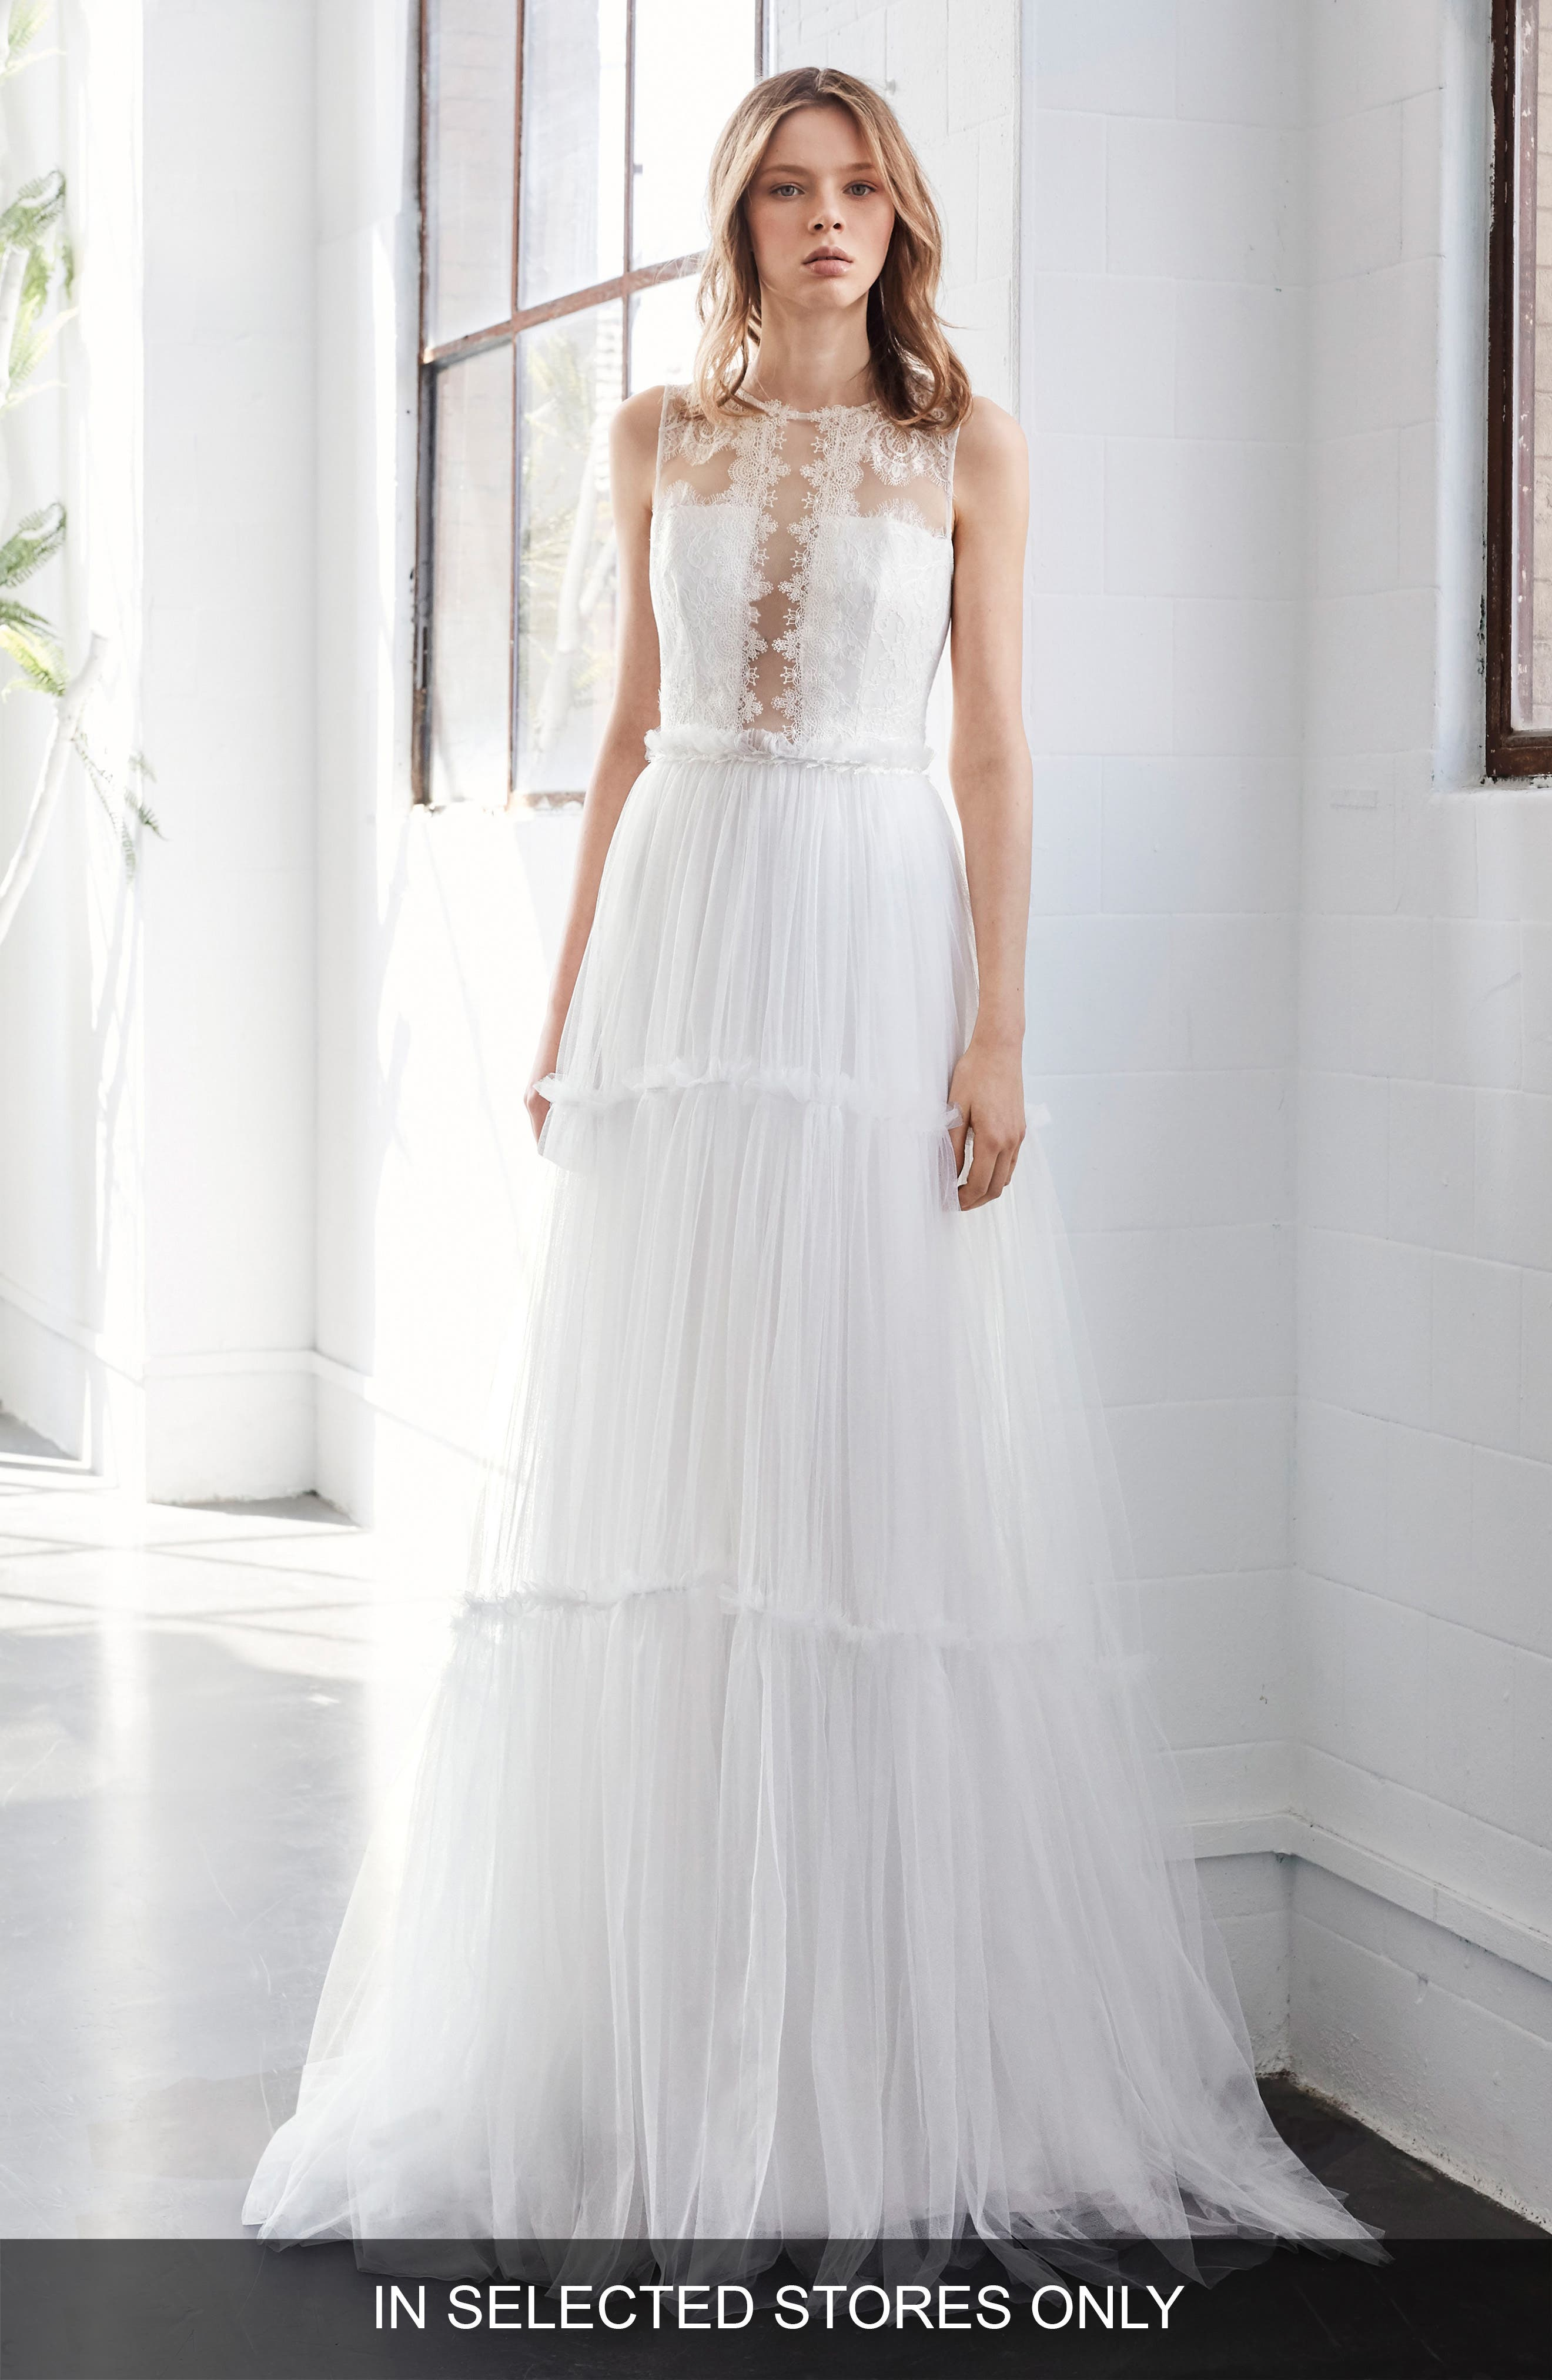 Inmaculada García Jaspe Lace & Tulle A-Line Gown